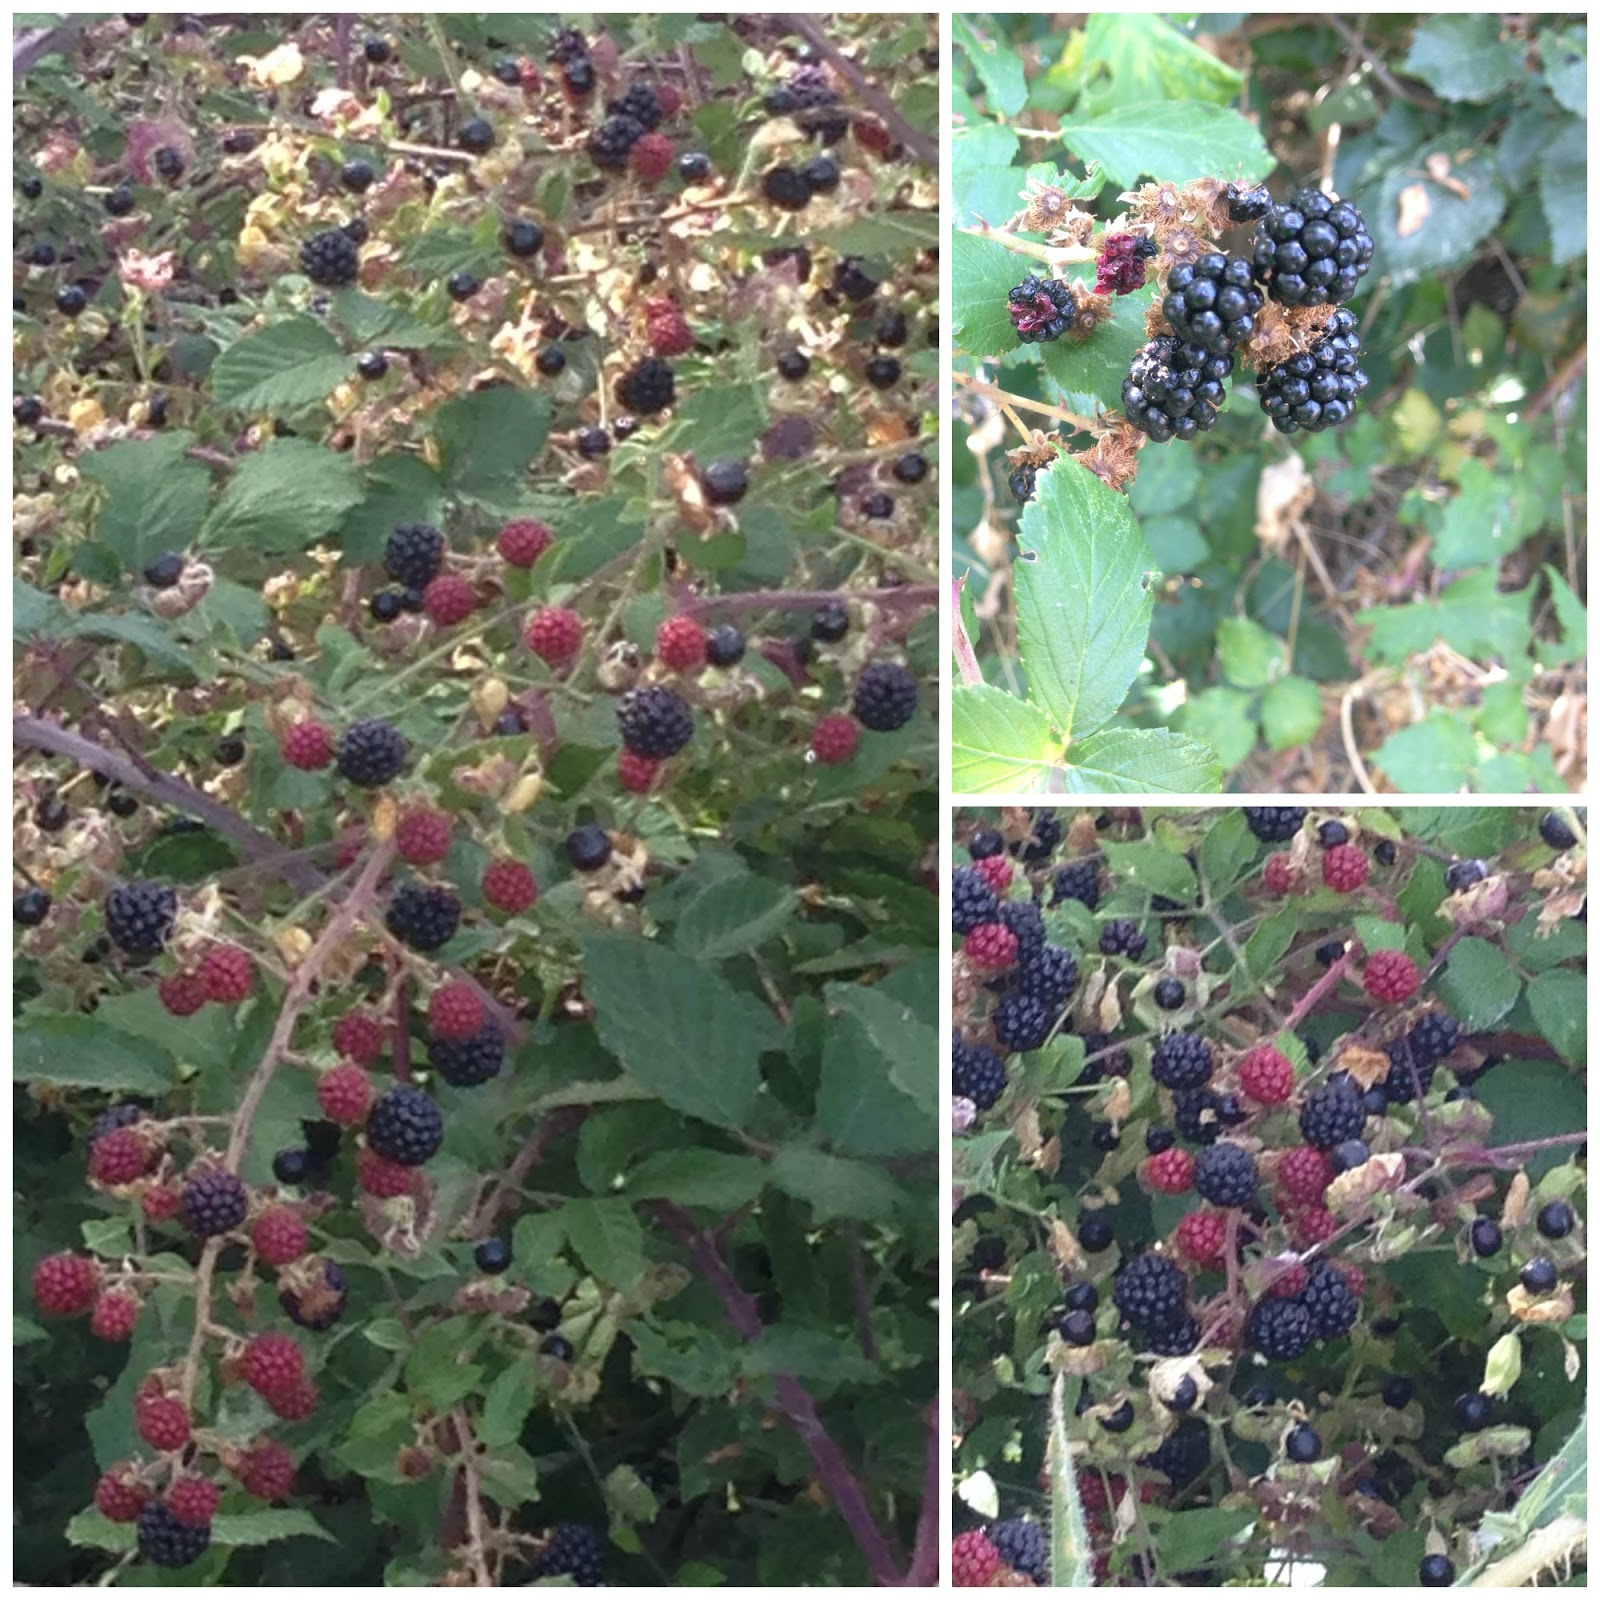 moras, blackberries